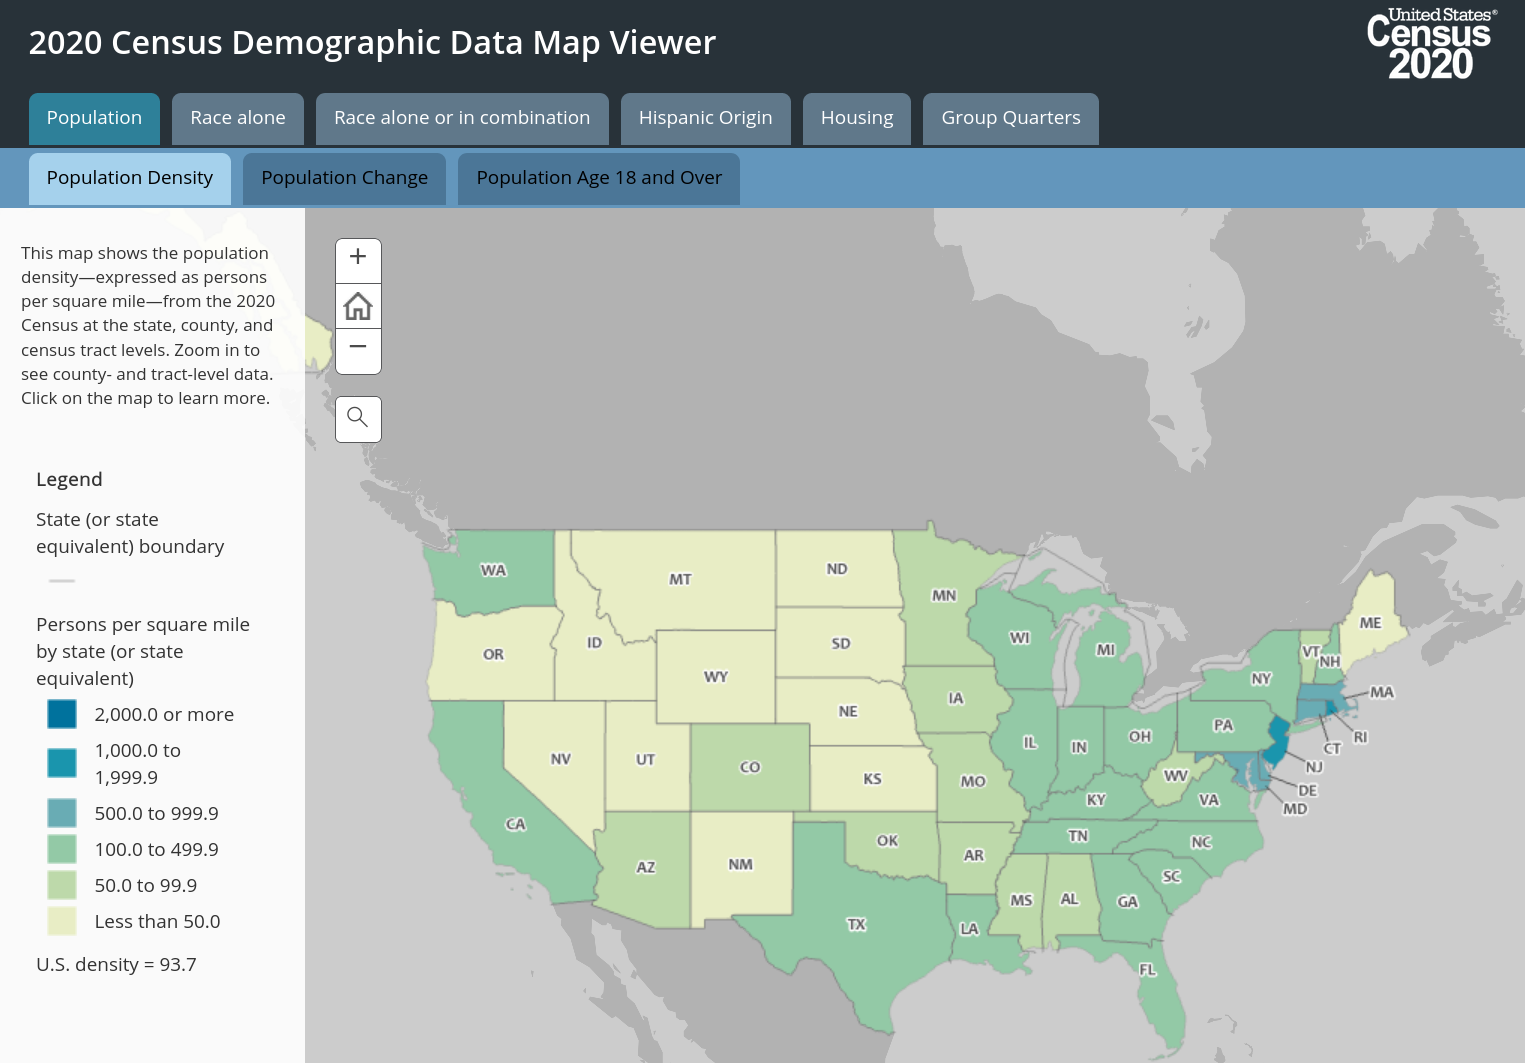 A screenshot from the 2020 Census Demographic Data Map Viewer